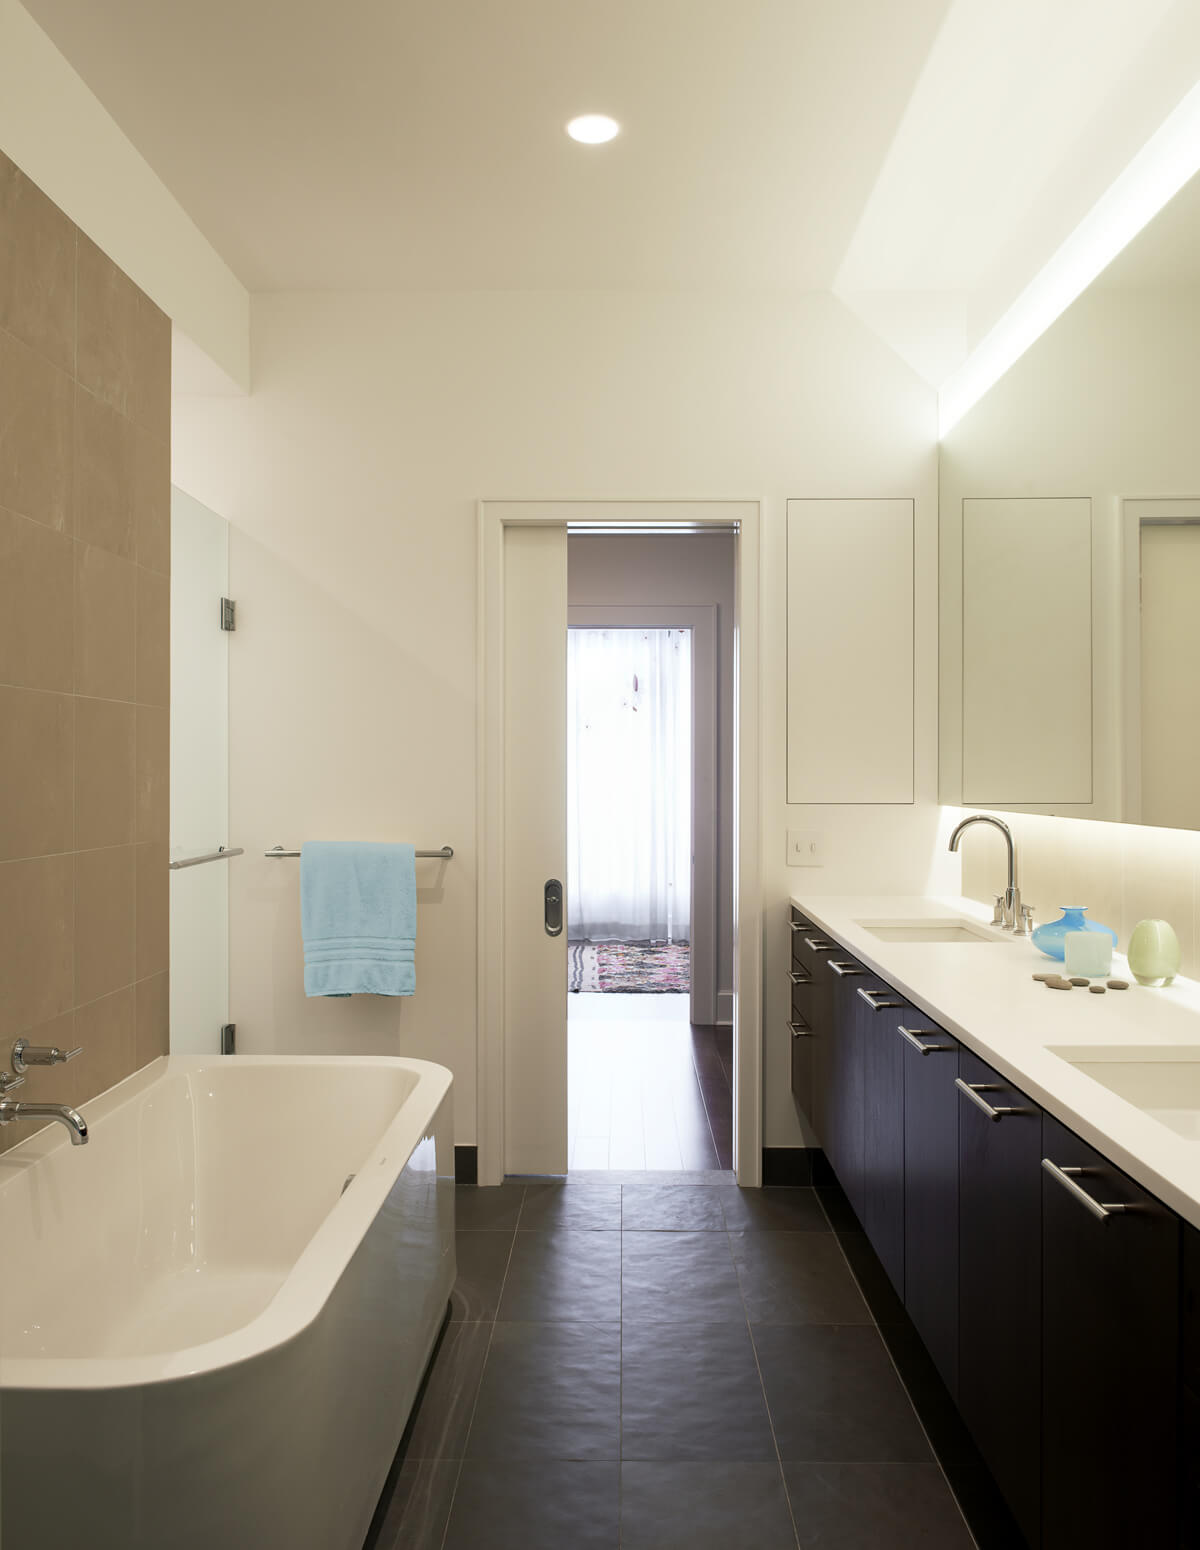 modern bathroom with lighting band etched into vanity mirror